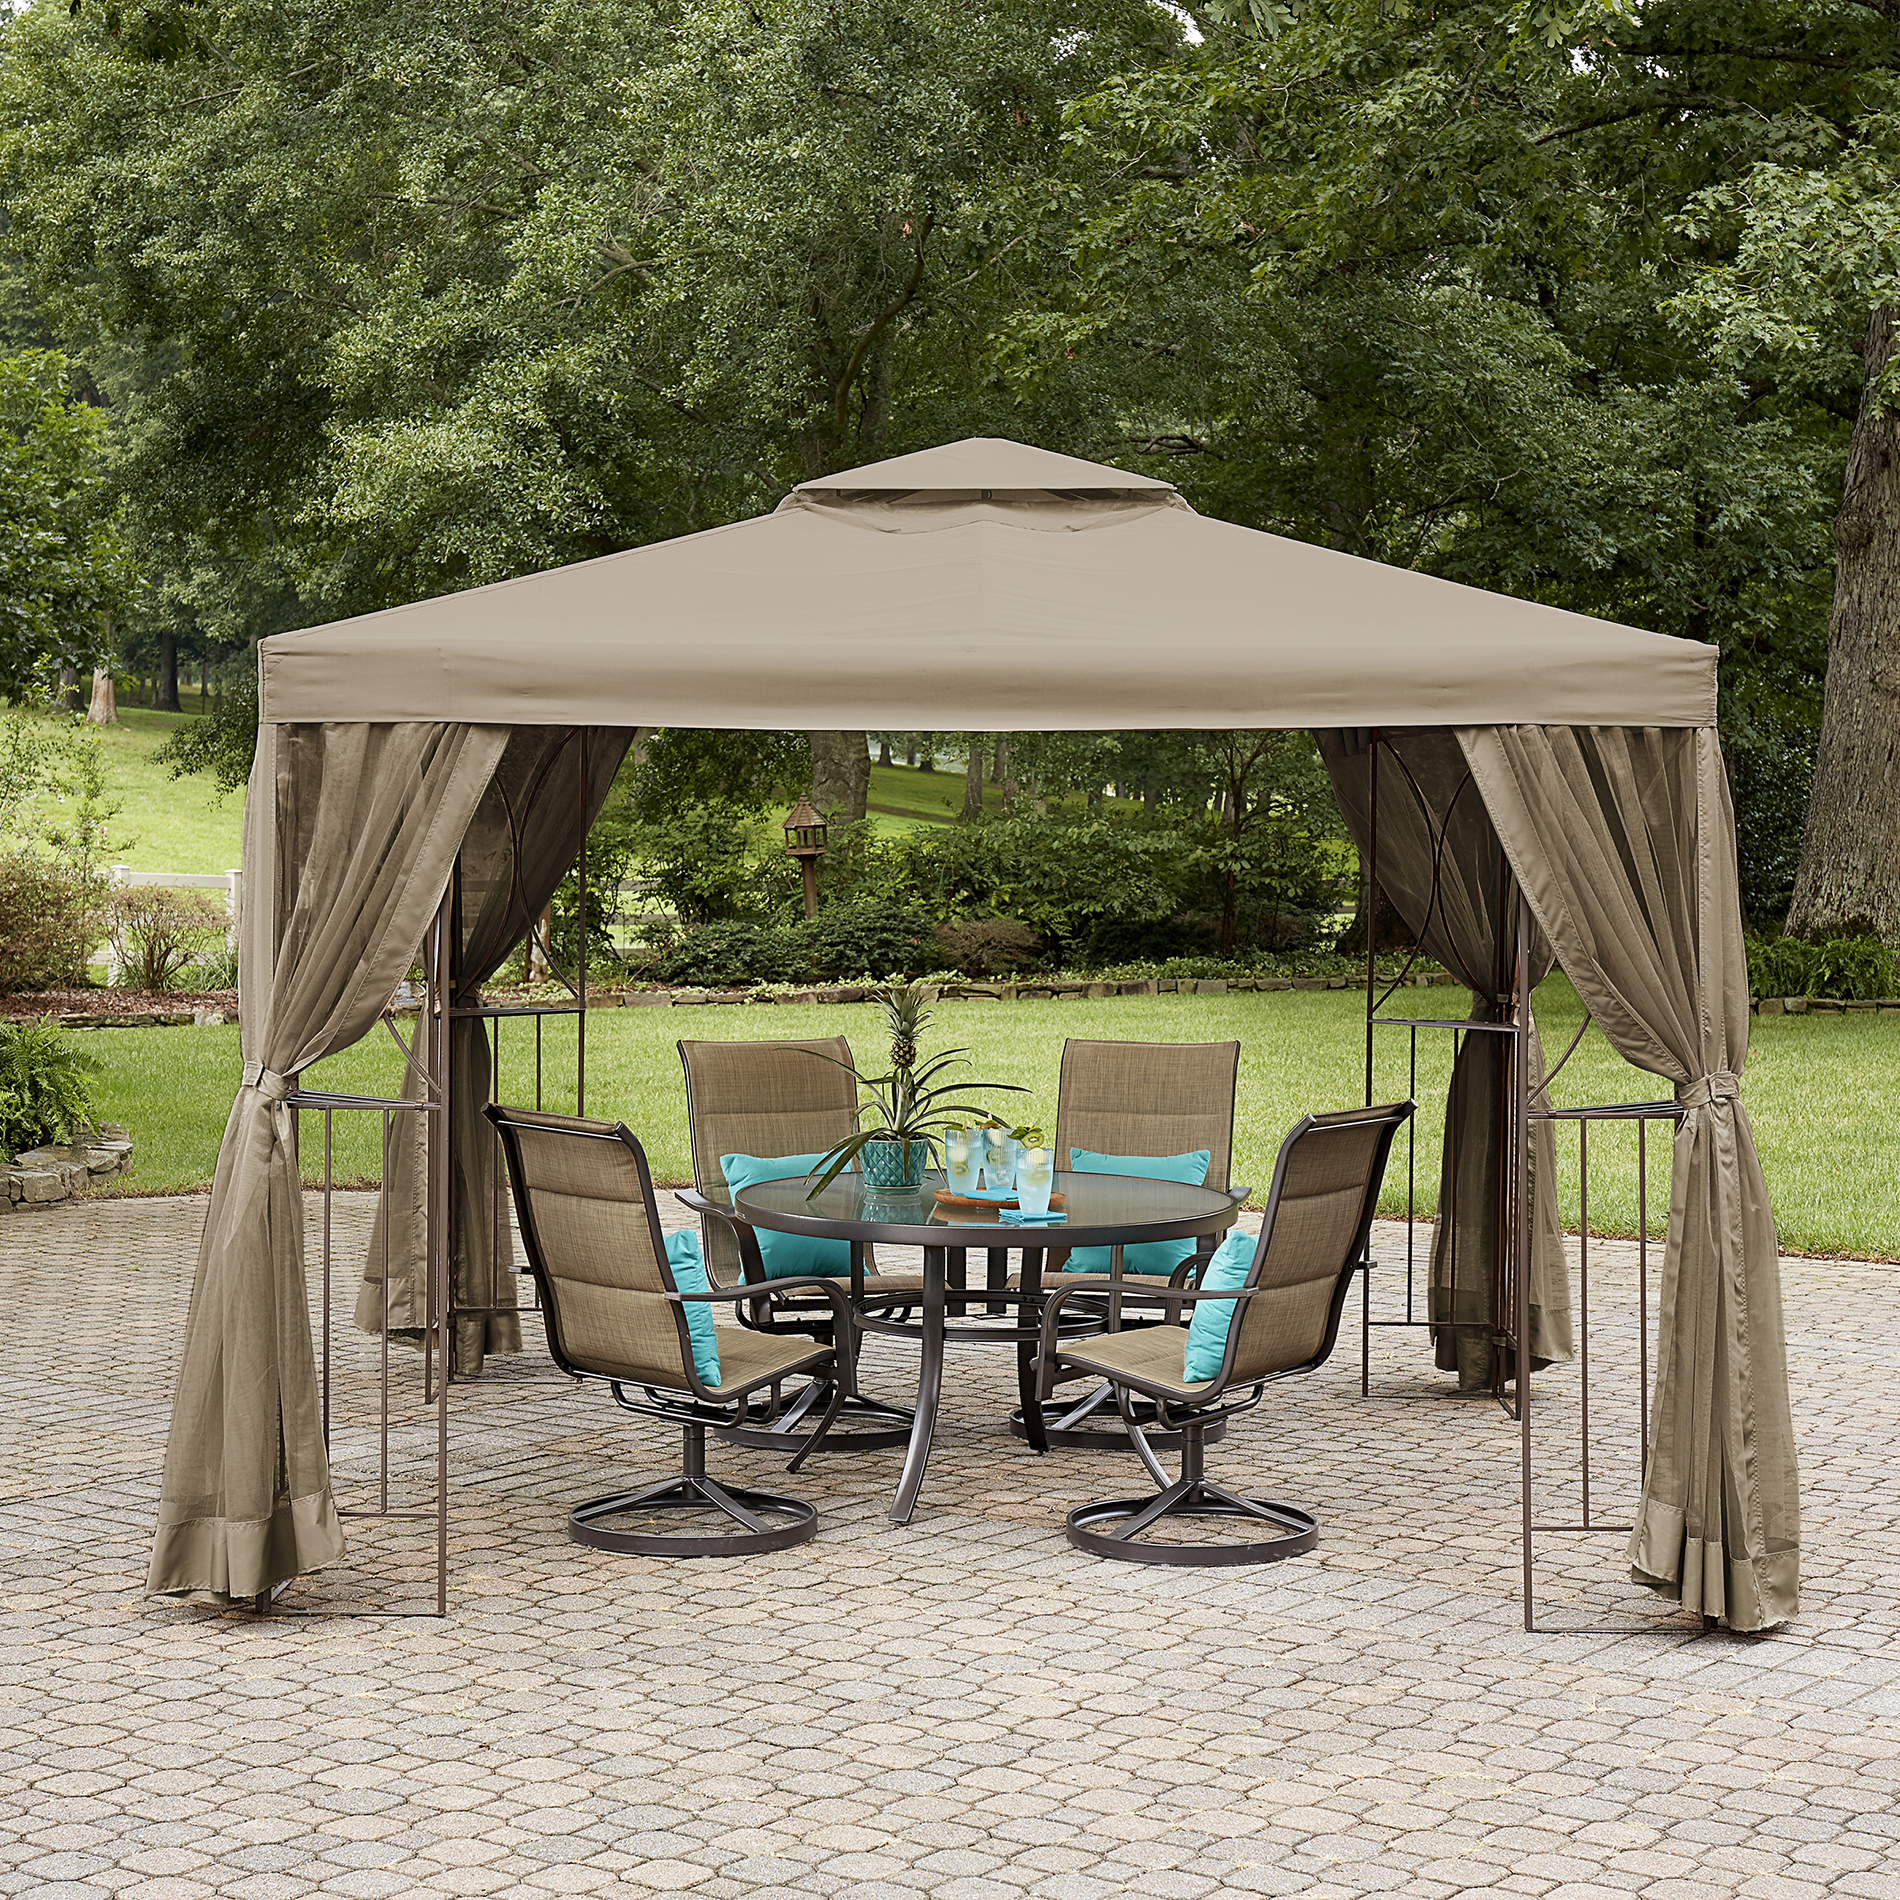 Garden Oasis Lakeville 10' x 10' Canopy Gazebo with Insect Netting *Limited Availability